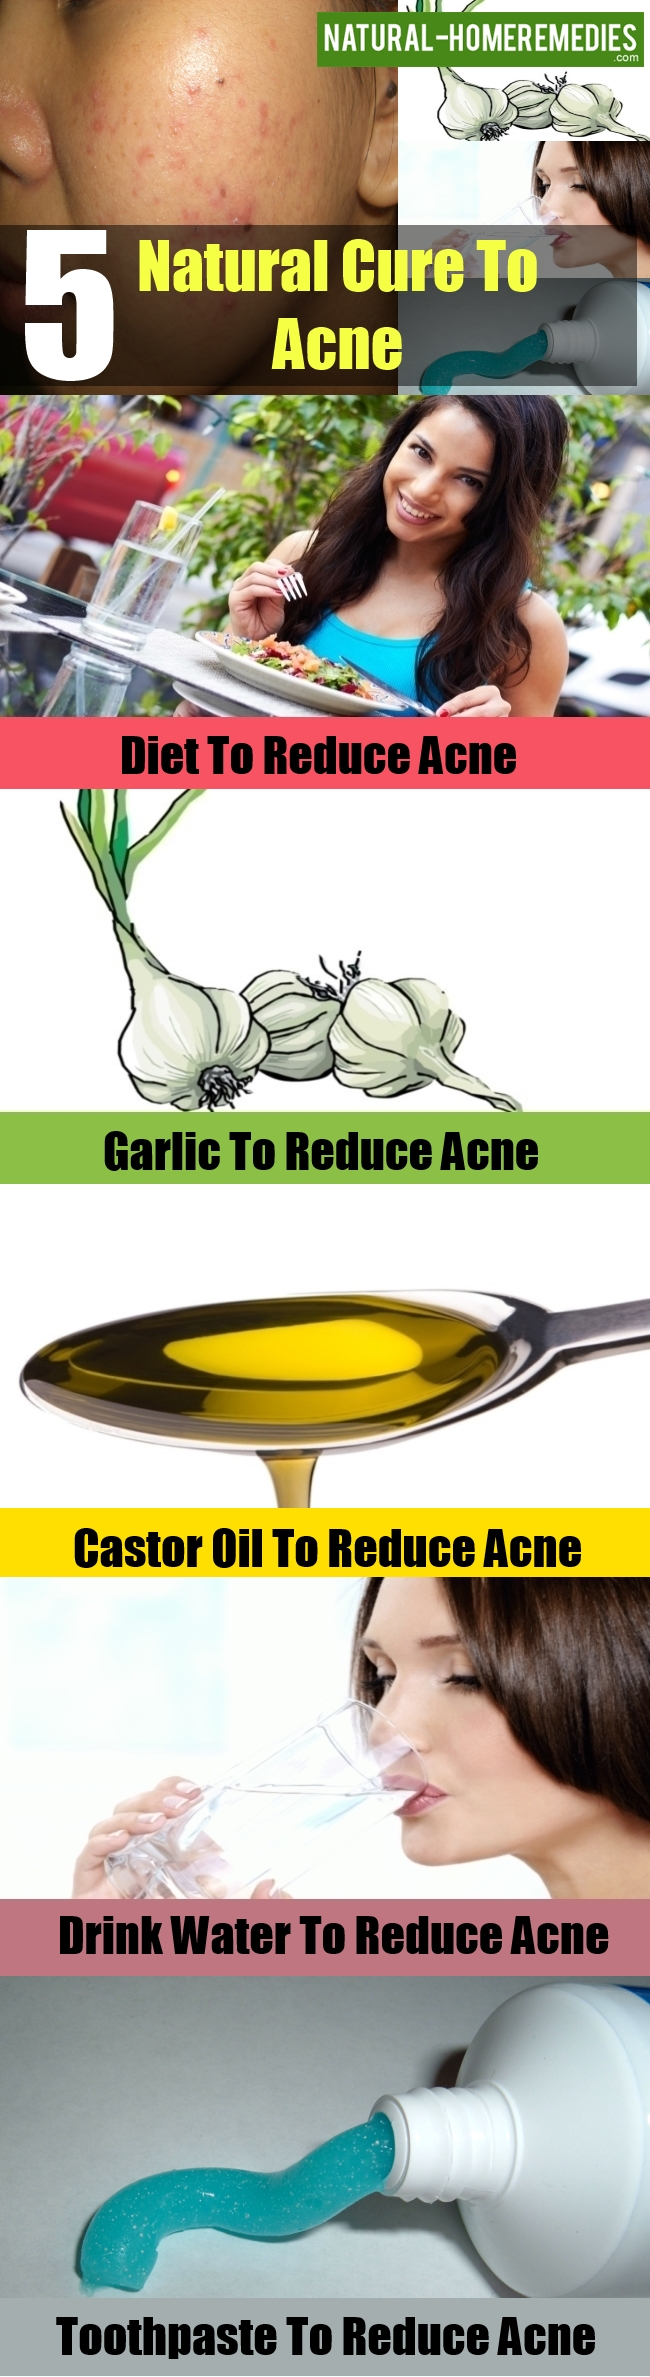 Natural Cure To Acne